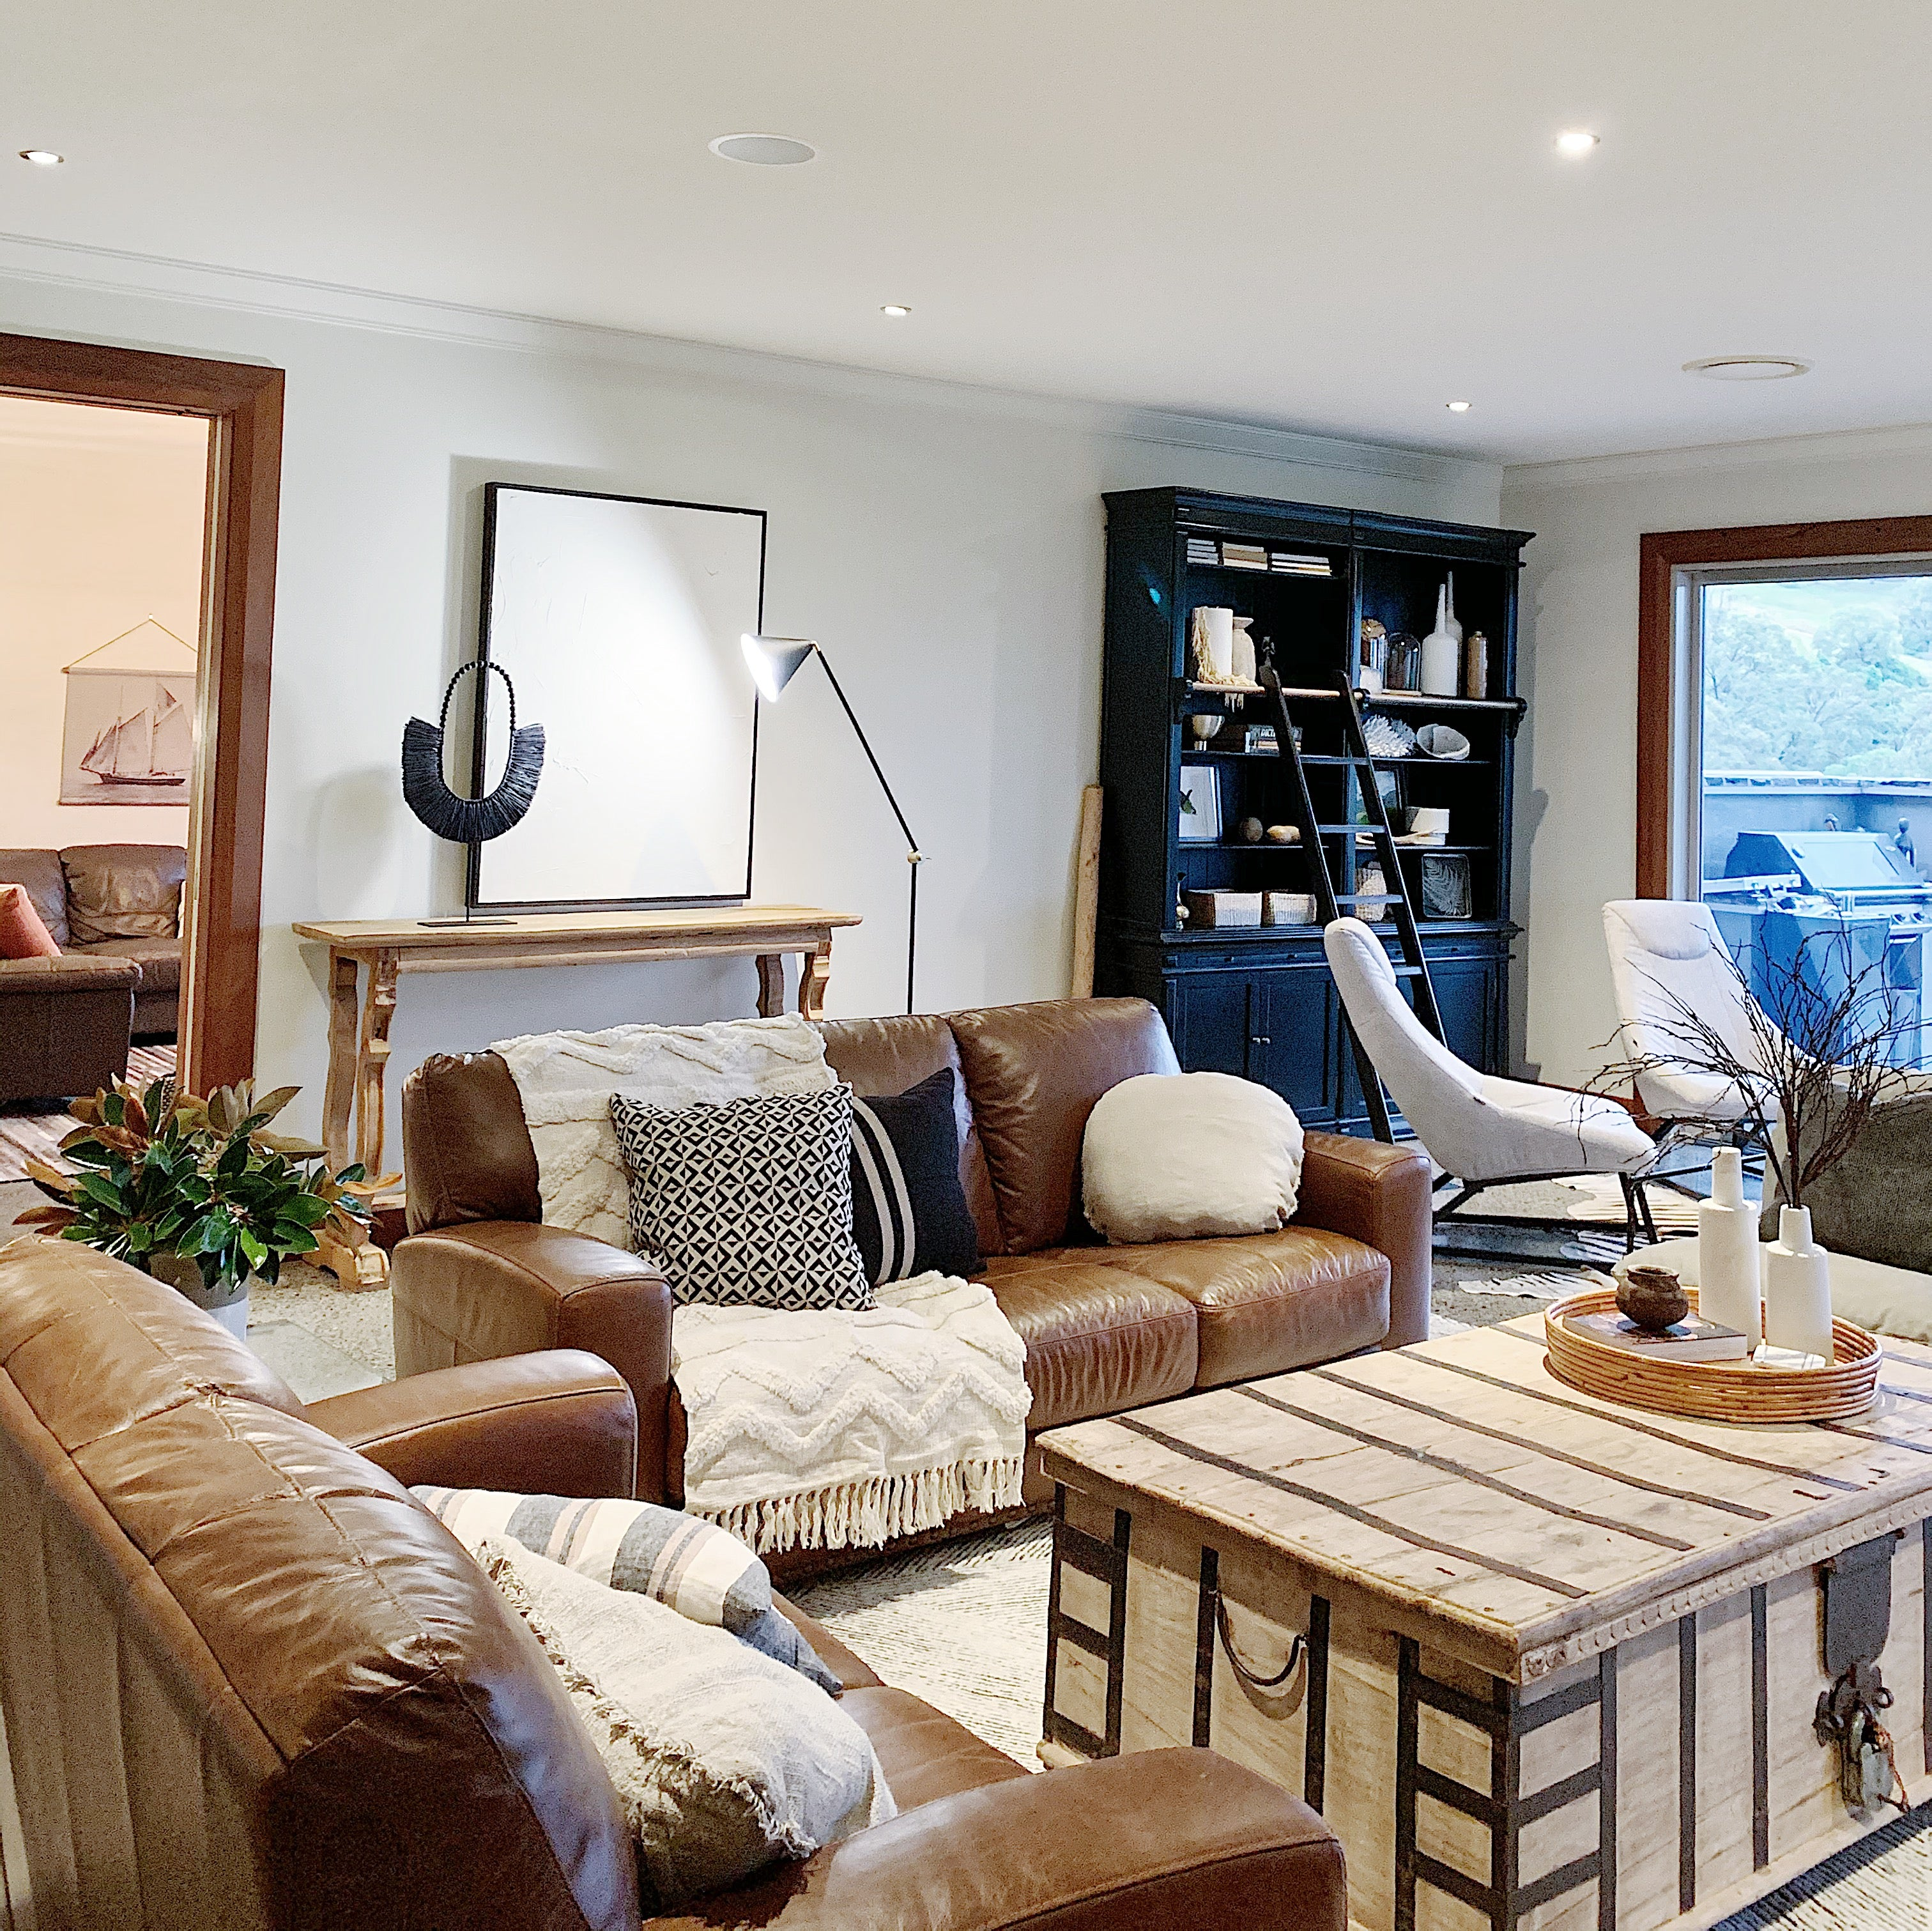 interior designer near me, interior decorator near me, interior design, living room interior design, modern house interior, interior design websites, contemporary interior design, interior home decoration, interior designers, interior design, home interior,Illawarra Wollongong Kiama Gerringong Thirroul Bulli Wombarra Austinmer Southern Highlands Berry Bowral Mittagong Shellharbour Flinders Warilla Home staging interior decorating design living room bedroom